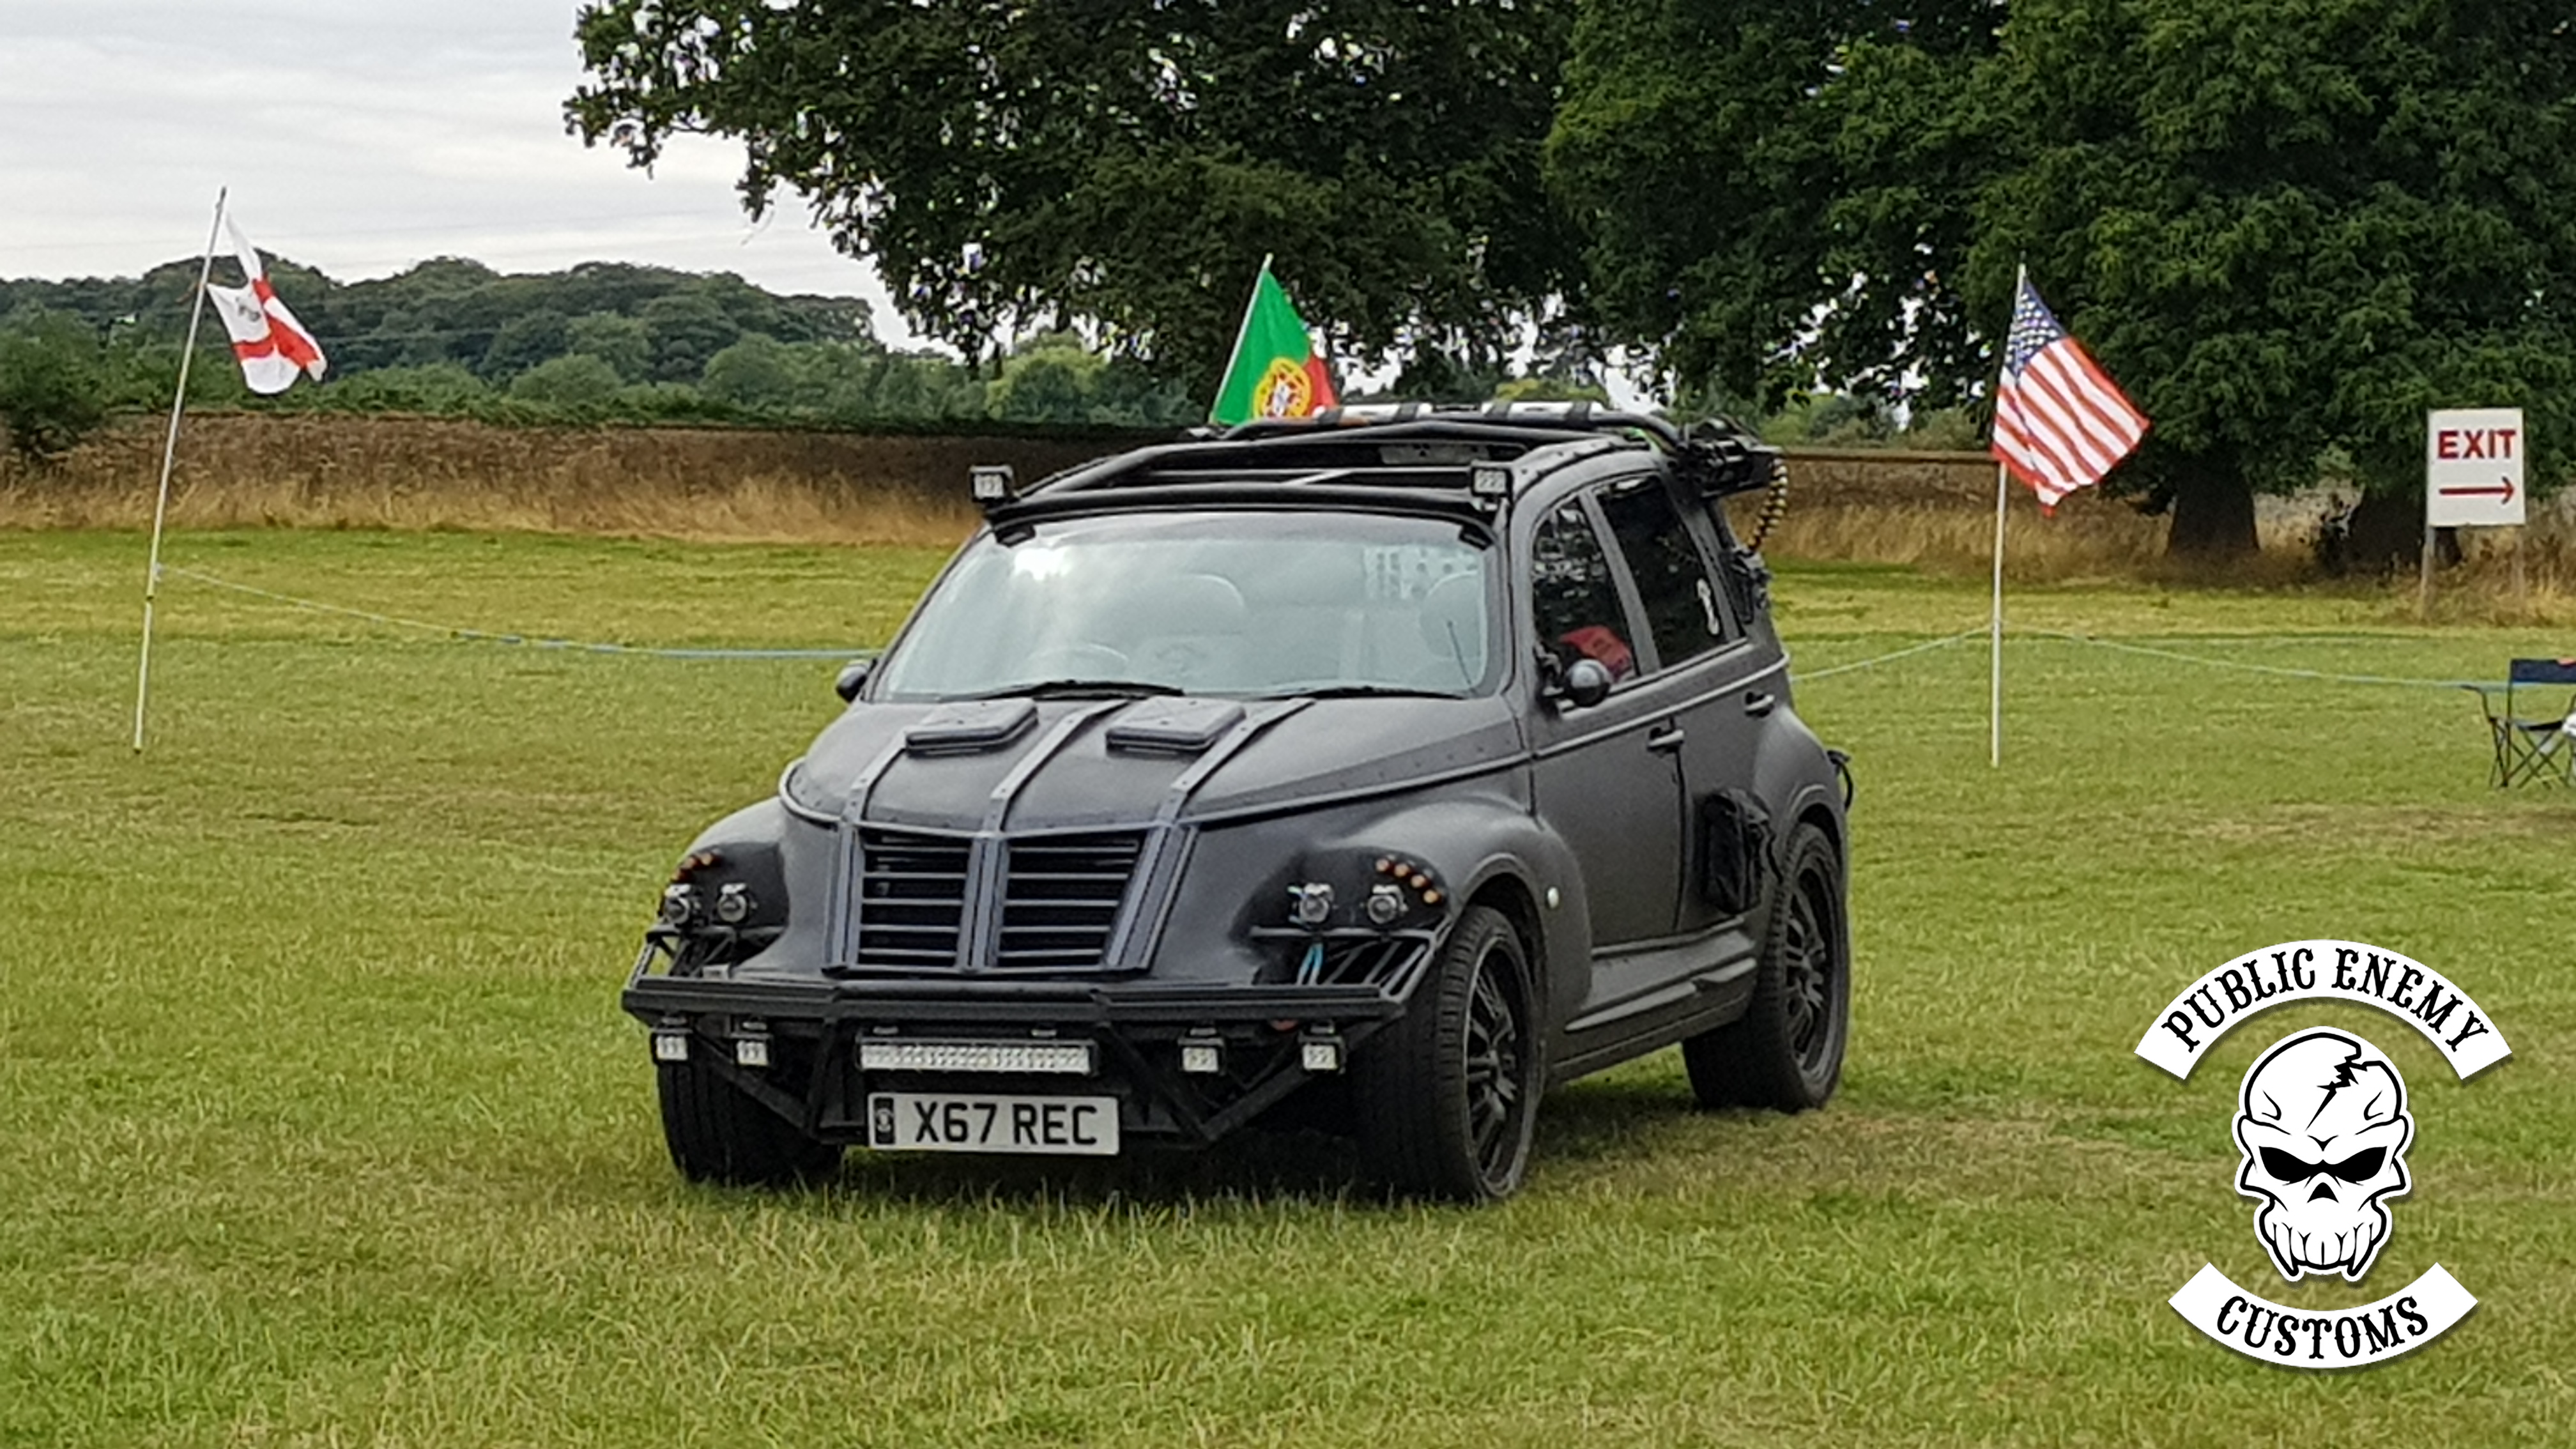 Assault cruiser at PITP Car show